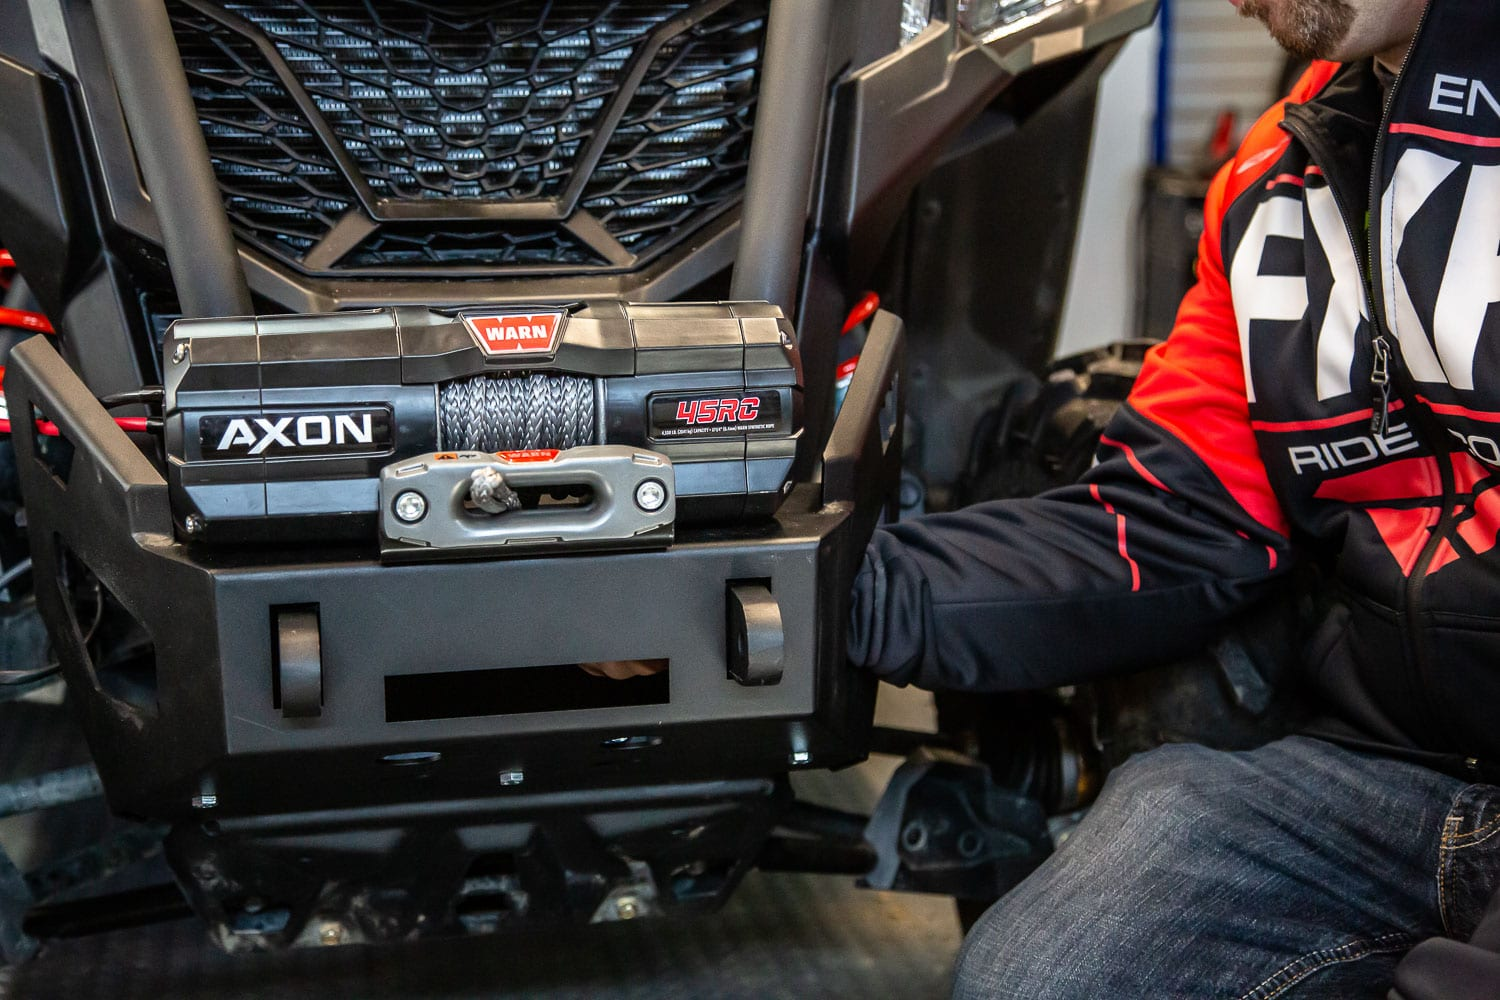 Installation of the Warn Axon 45 RC Winch